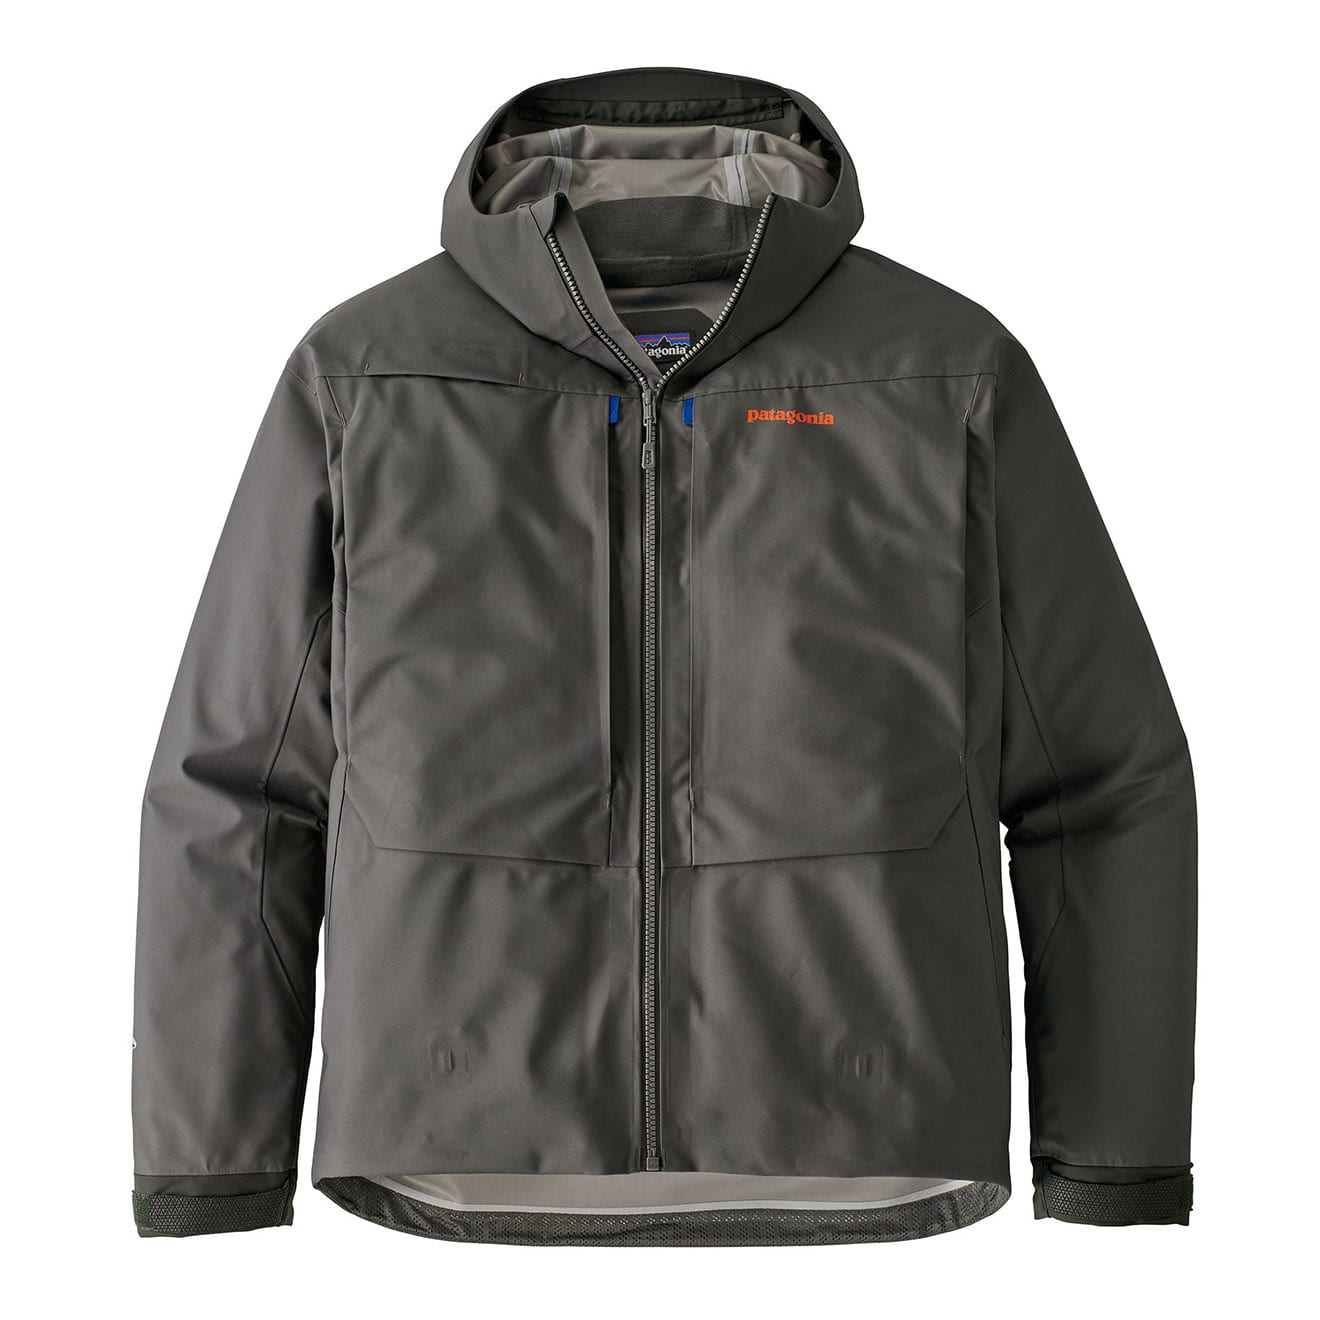 5a80bd3a859 Patagonia River Salt Jacket Forge Grey - The Sporting Lodge